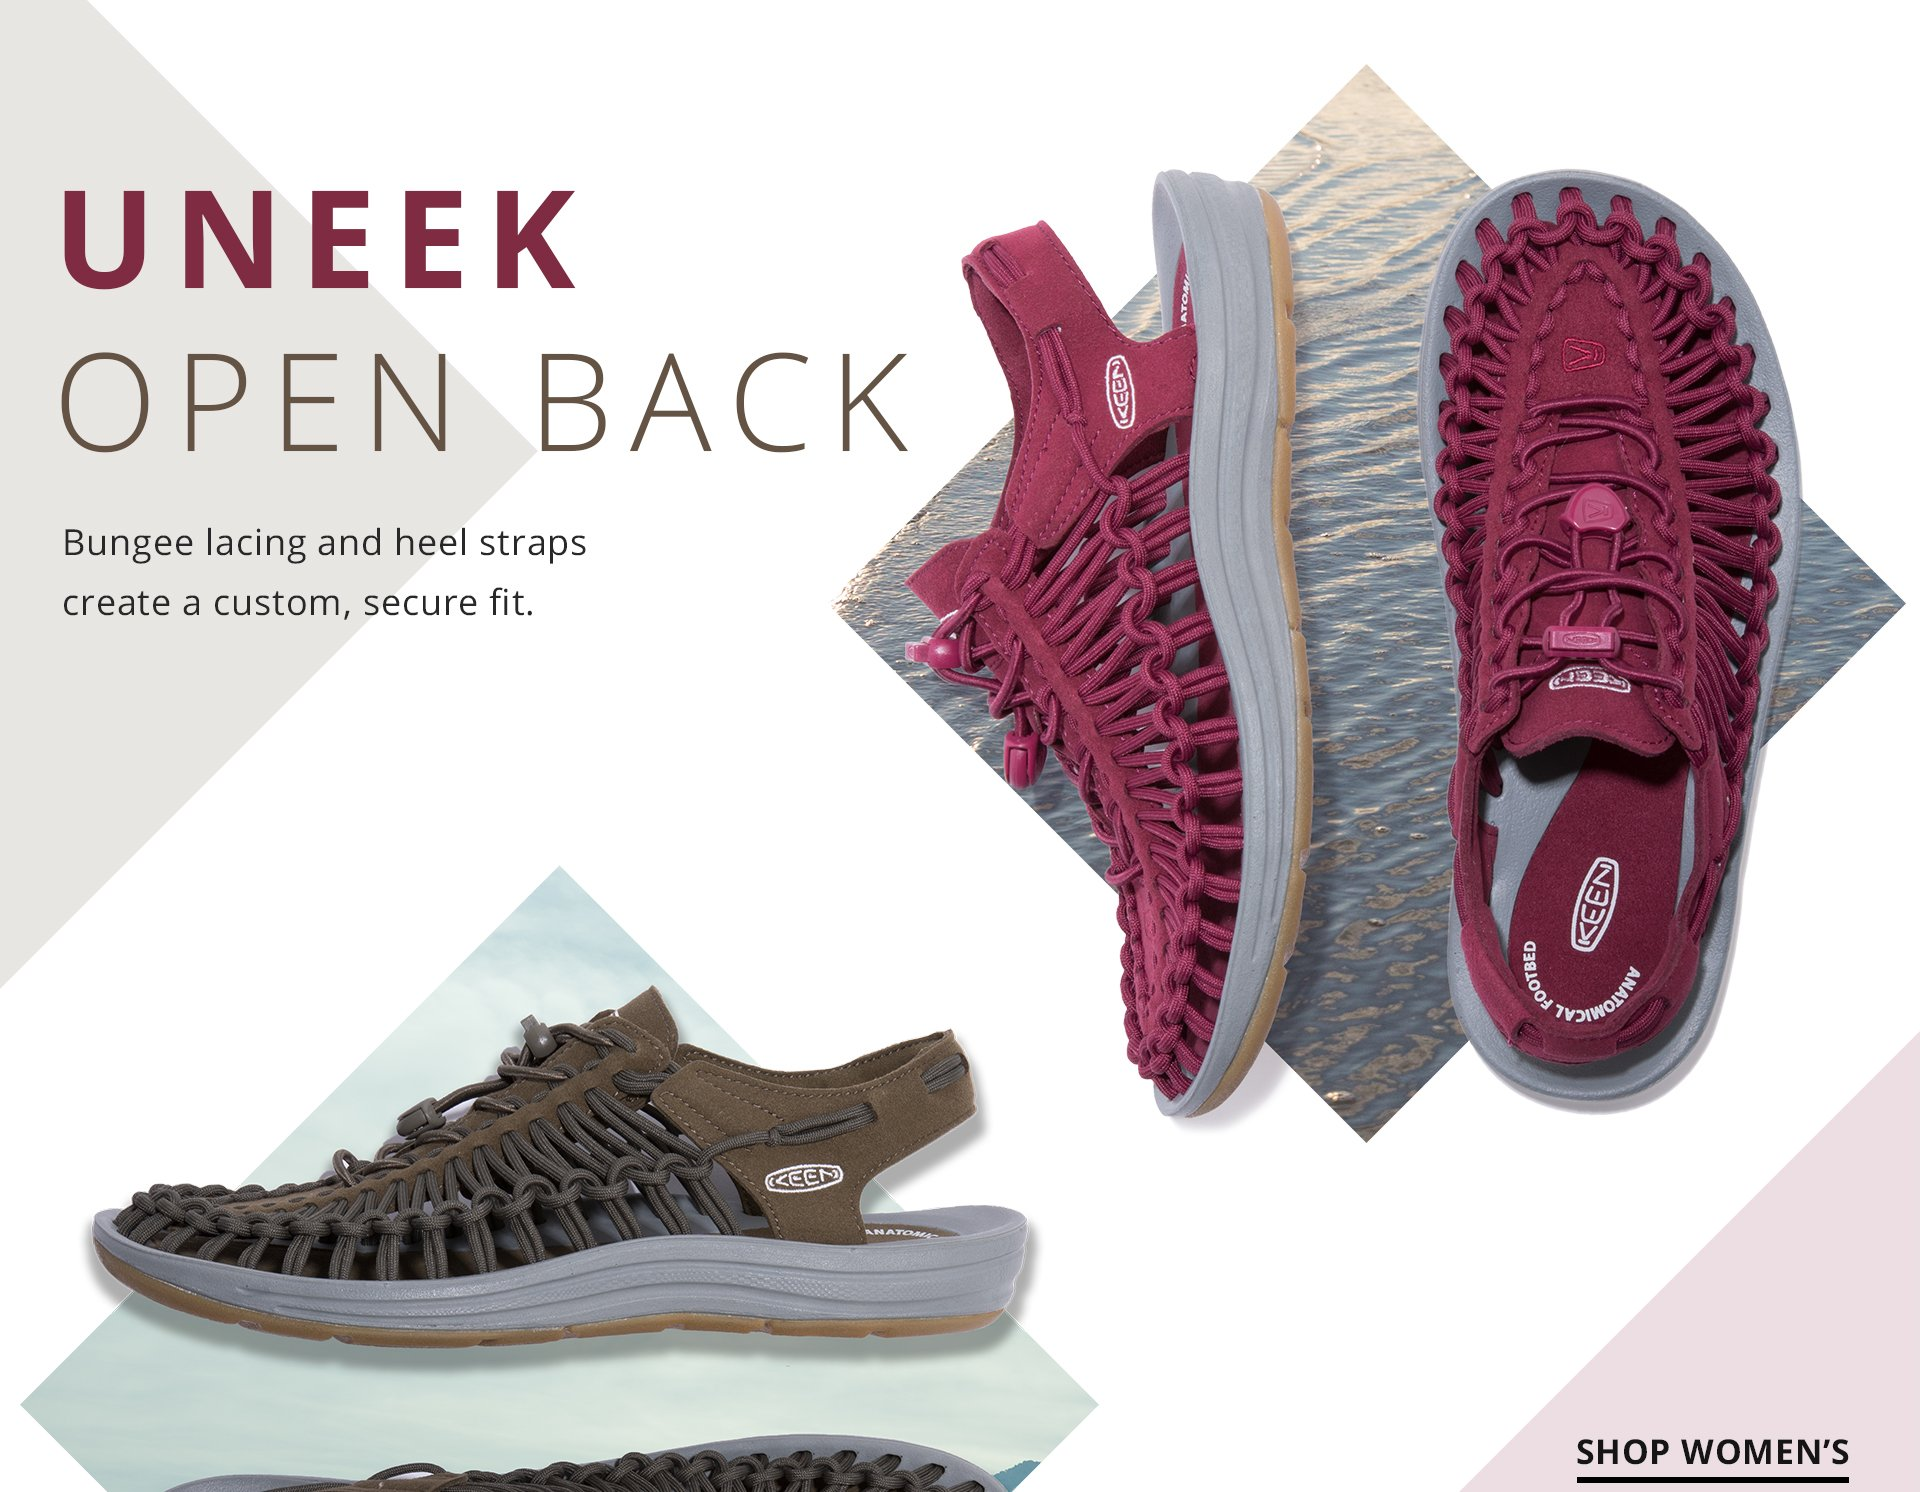 Uneek Open Back.Bungee lacing and heel straps create a custom, secure fit. Shop women.